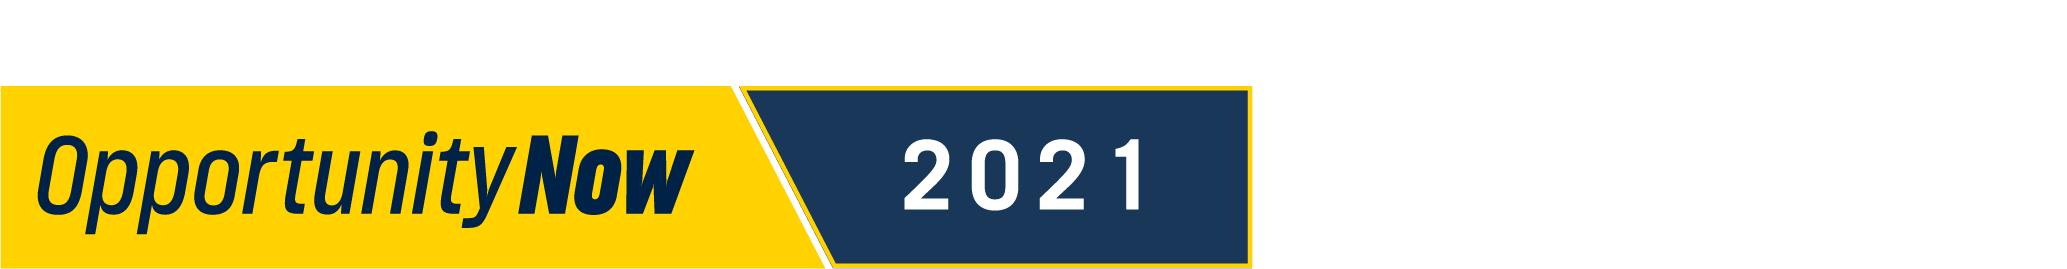 Opportunity Now 2021 logo